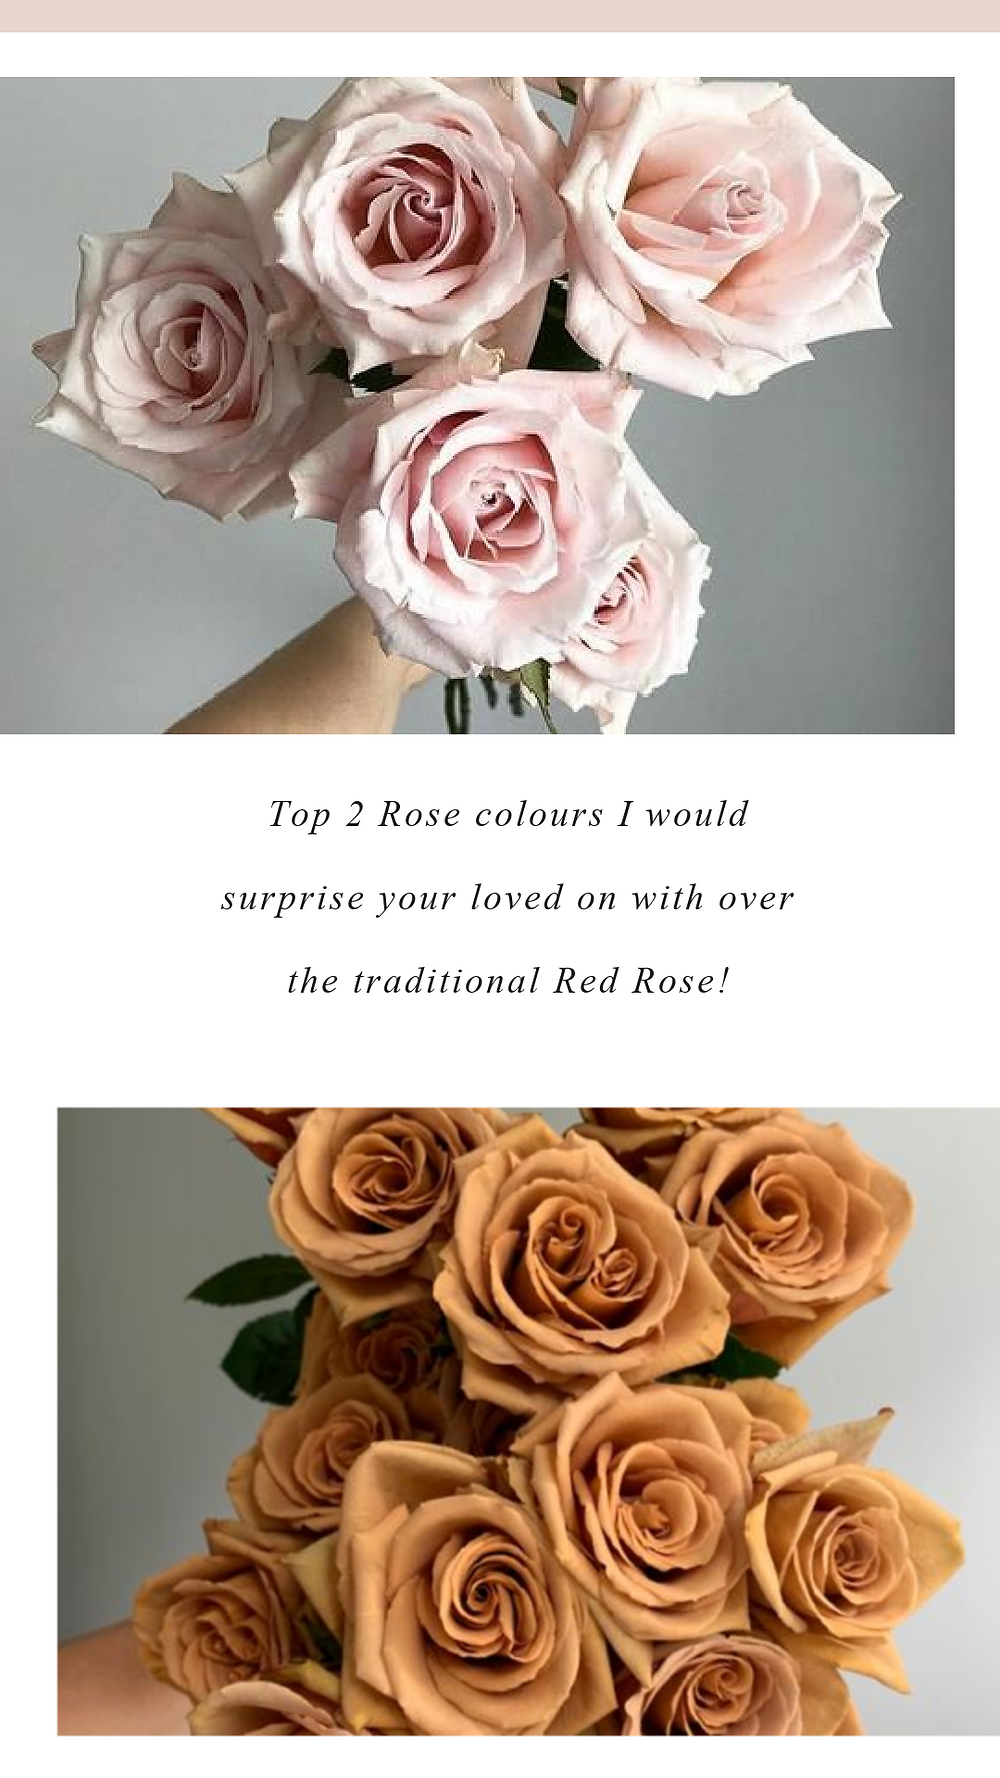 Roses are perfect for Valentines Day, Especially the Toffee Roses and Quicksand Roses